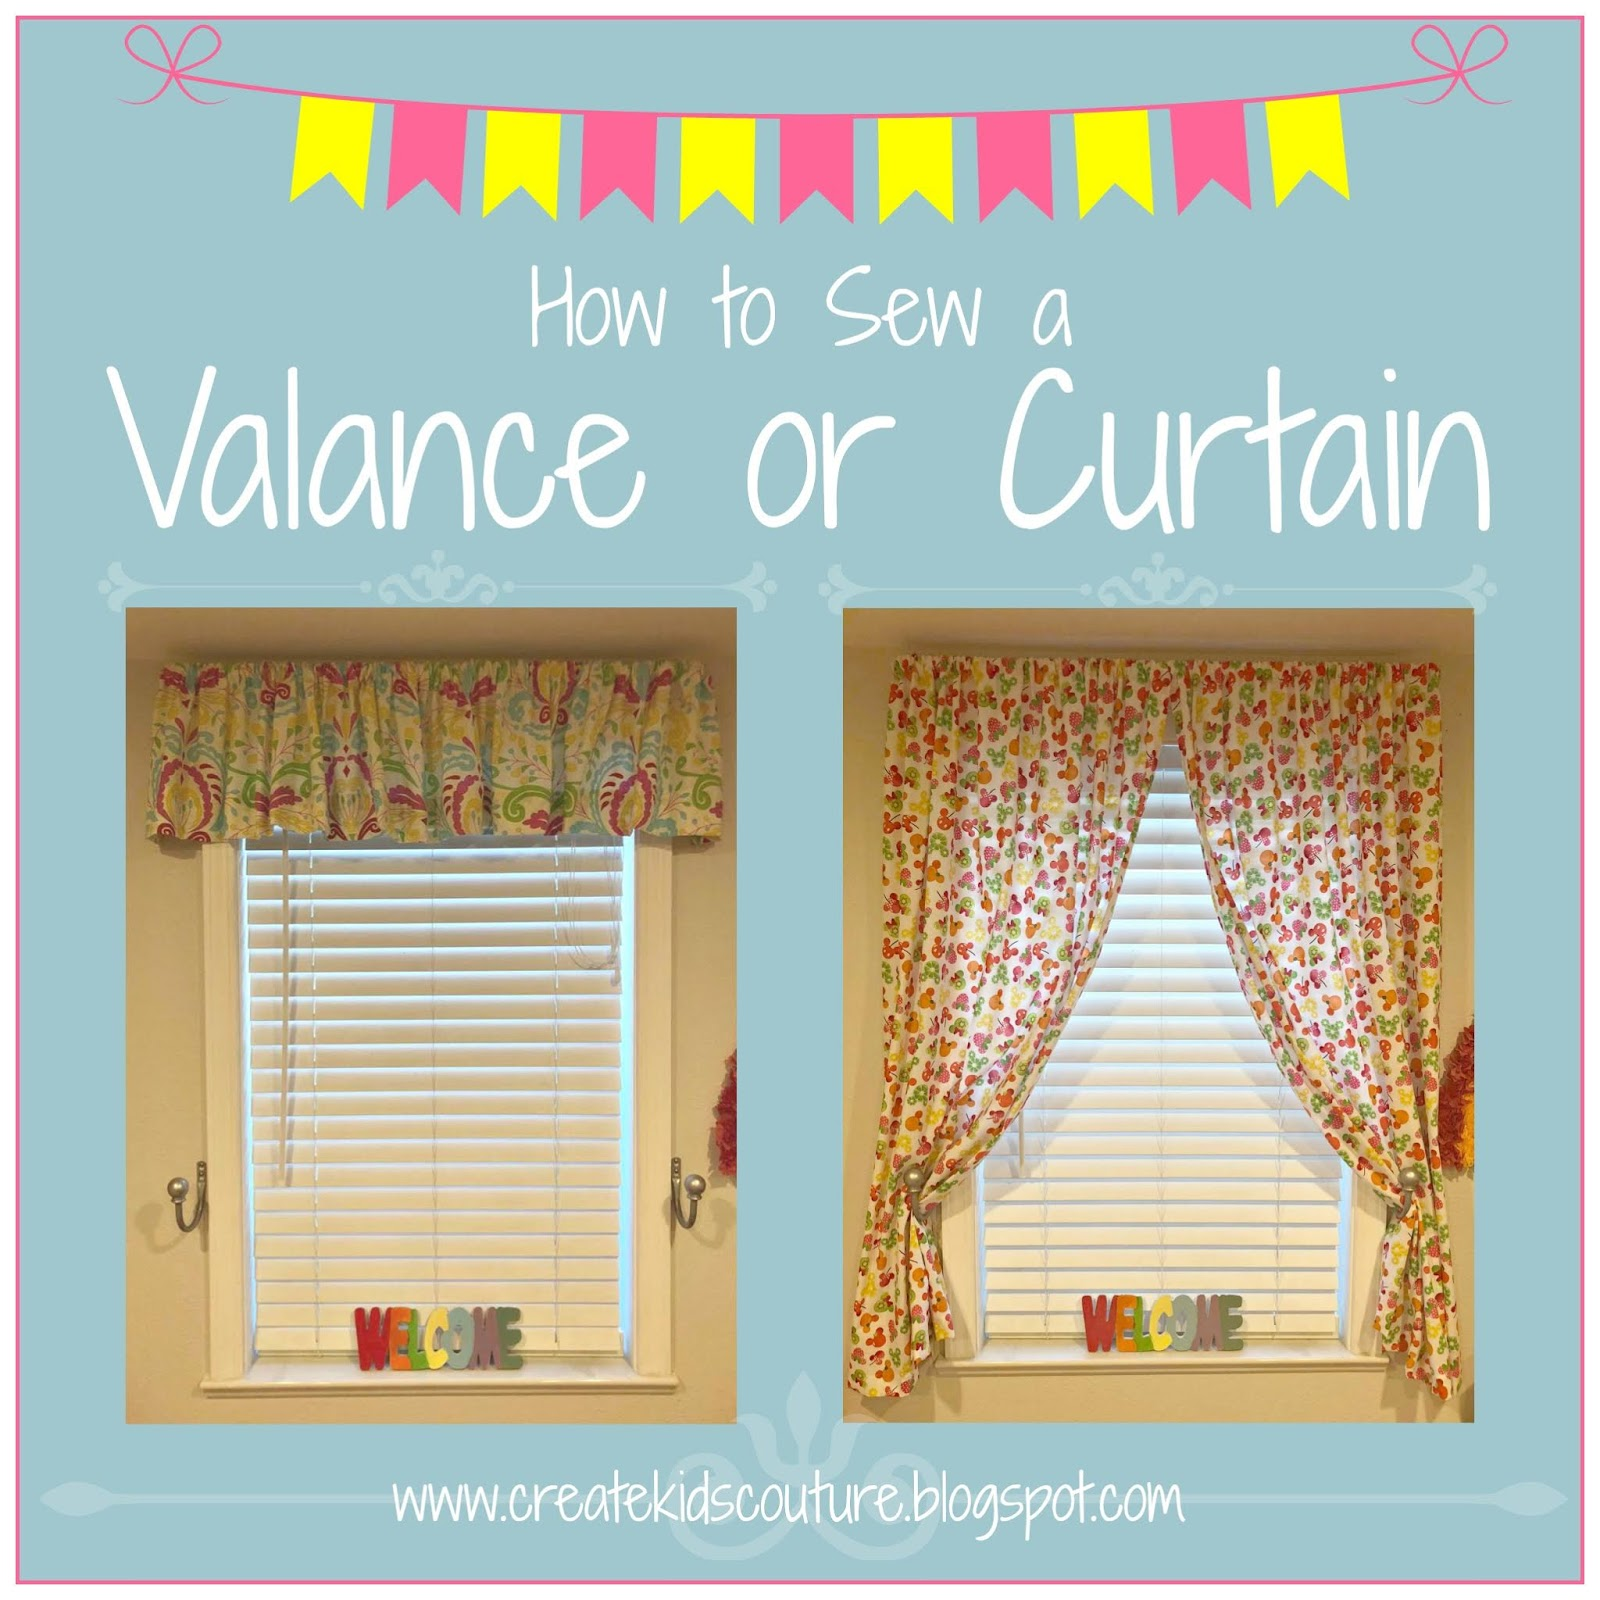 how to sew a valance or curtain